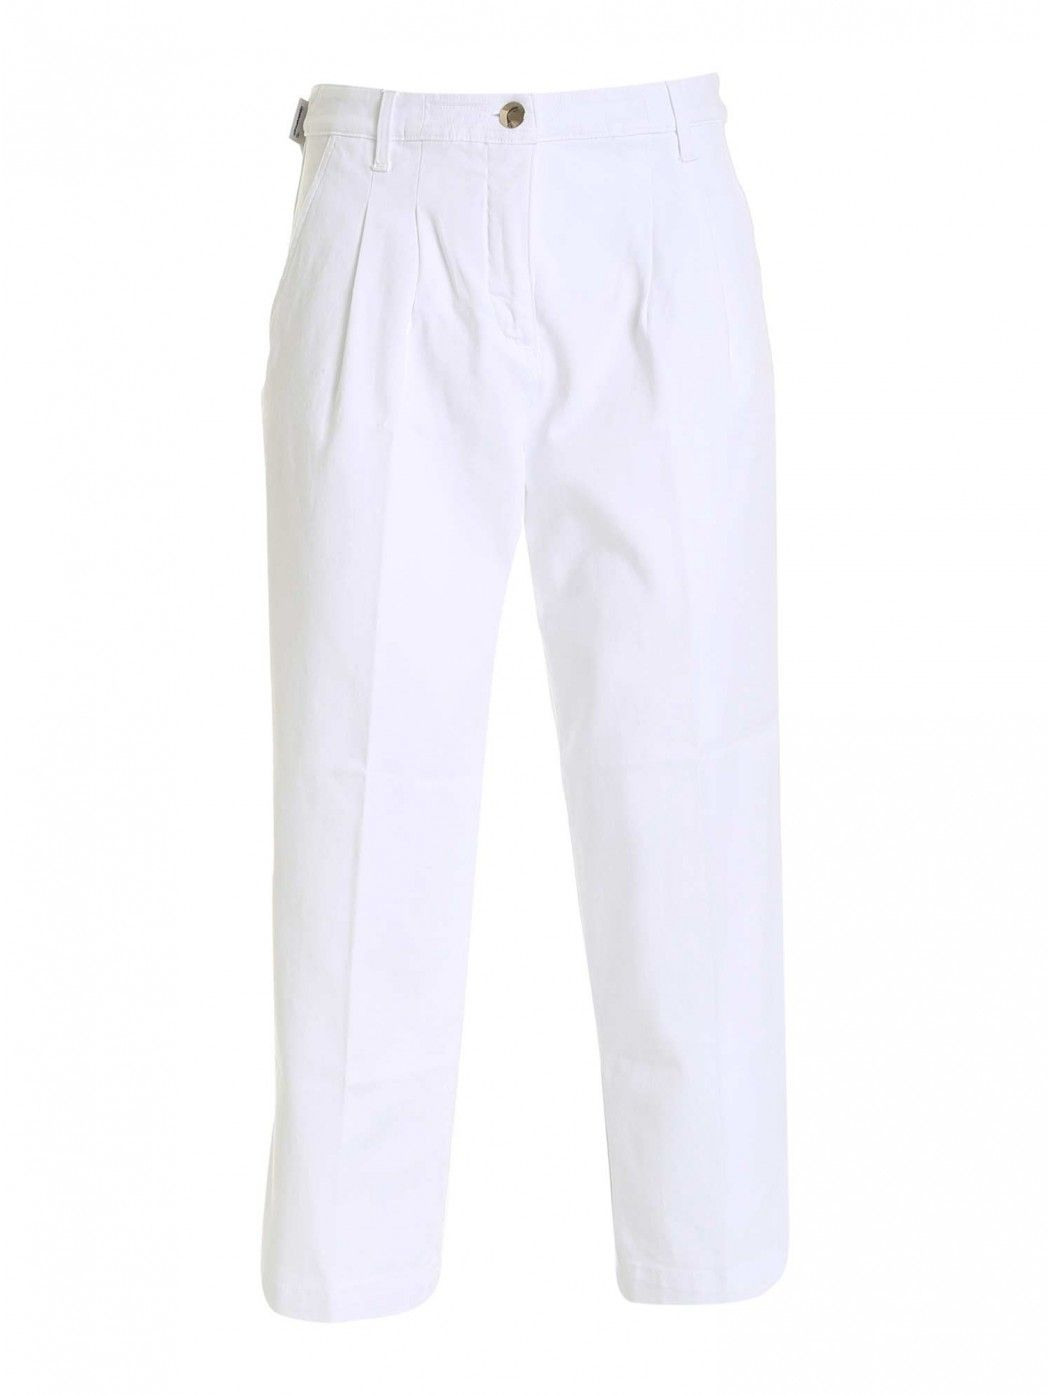 CHINO PPT STR SOLID JACOB COHEN DONNA LINETTE01908S 111